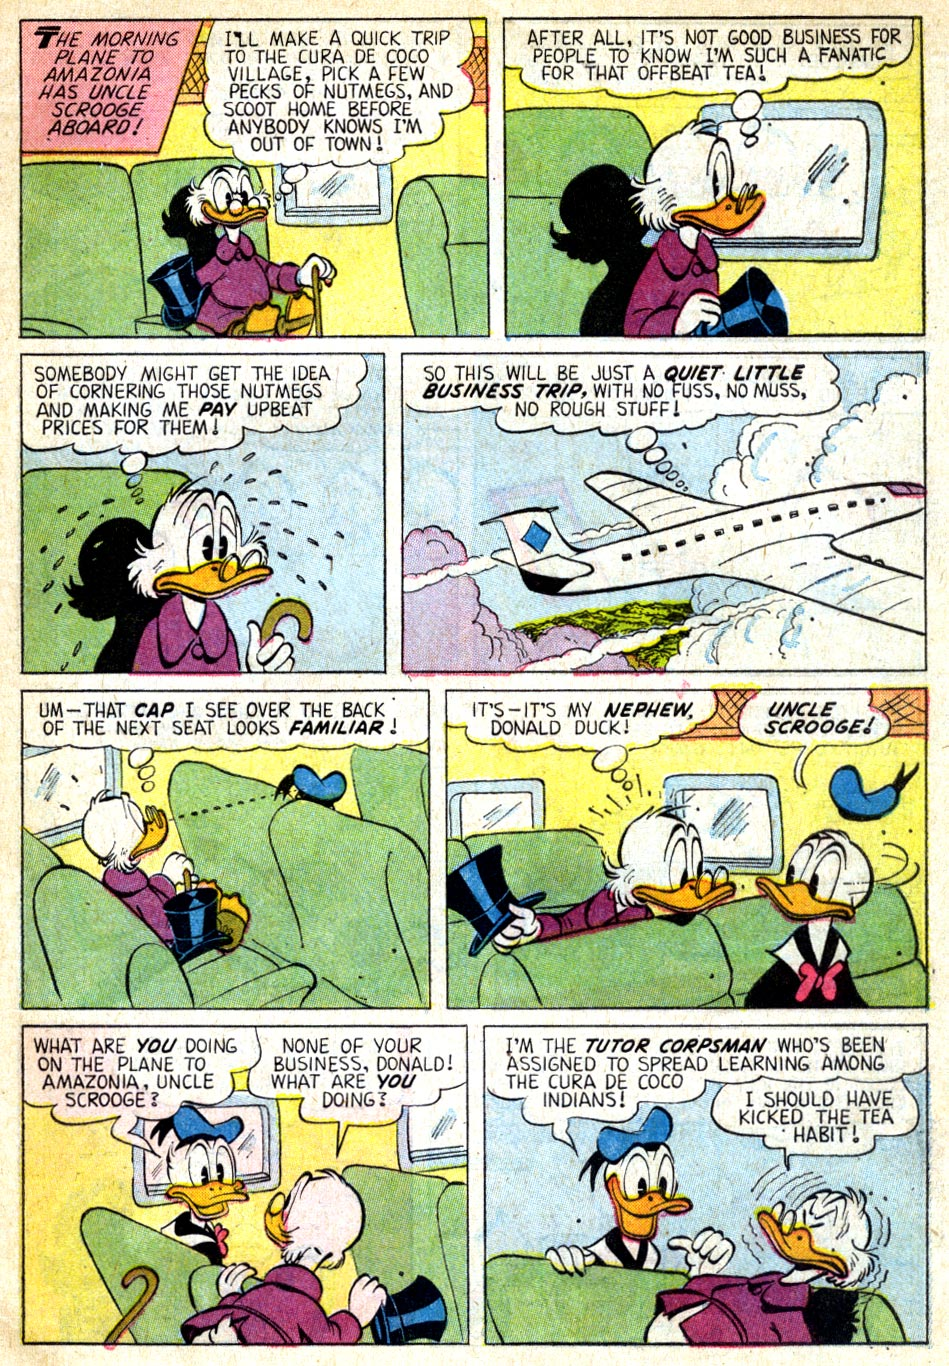 inefree.com/uncle-scroog #366 - English 5